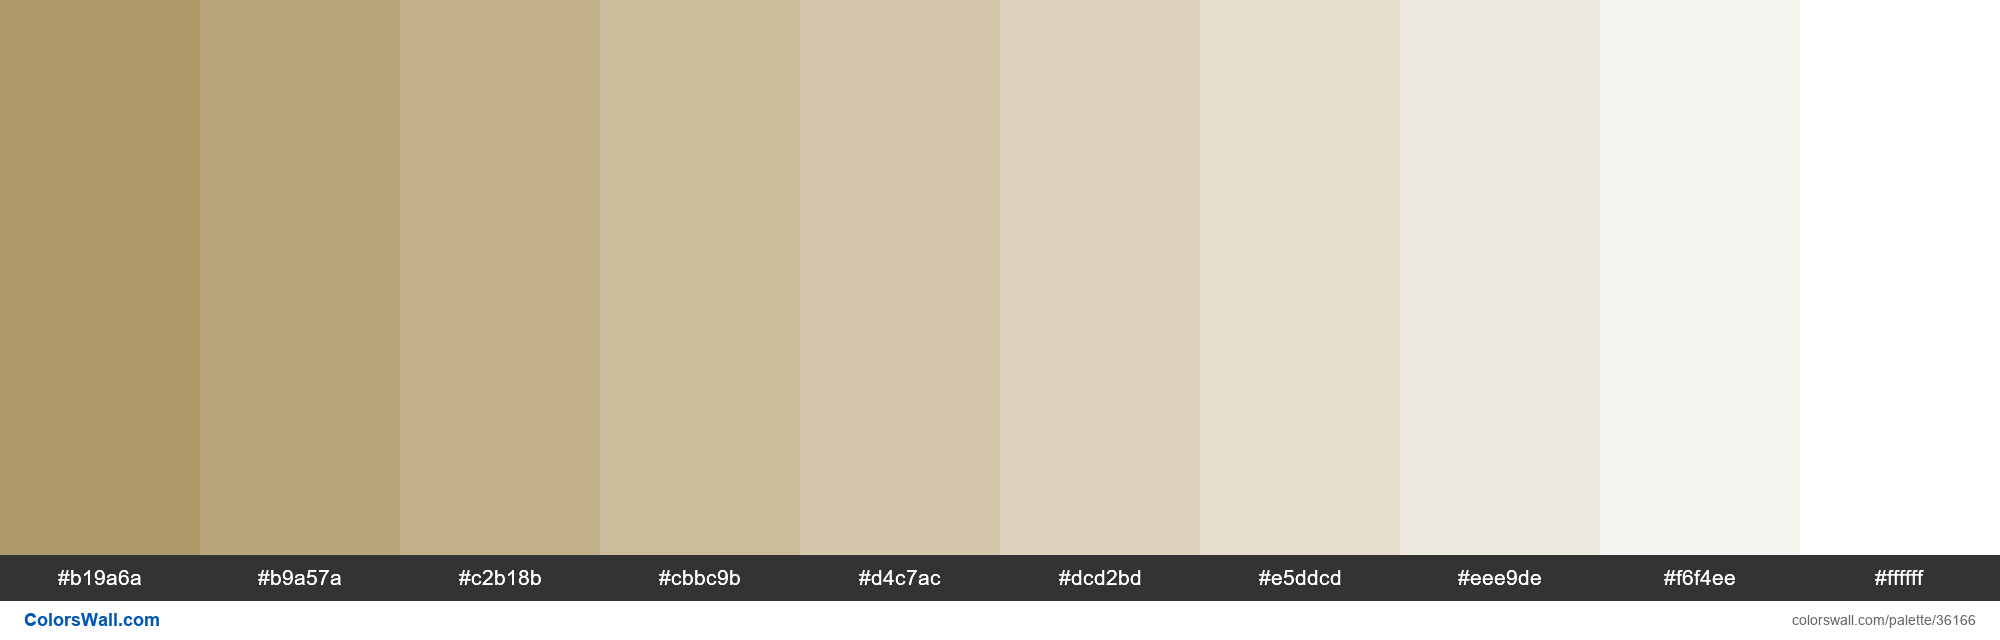 Tints XKCD Color dark sand #a88f59 hex - #36166